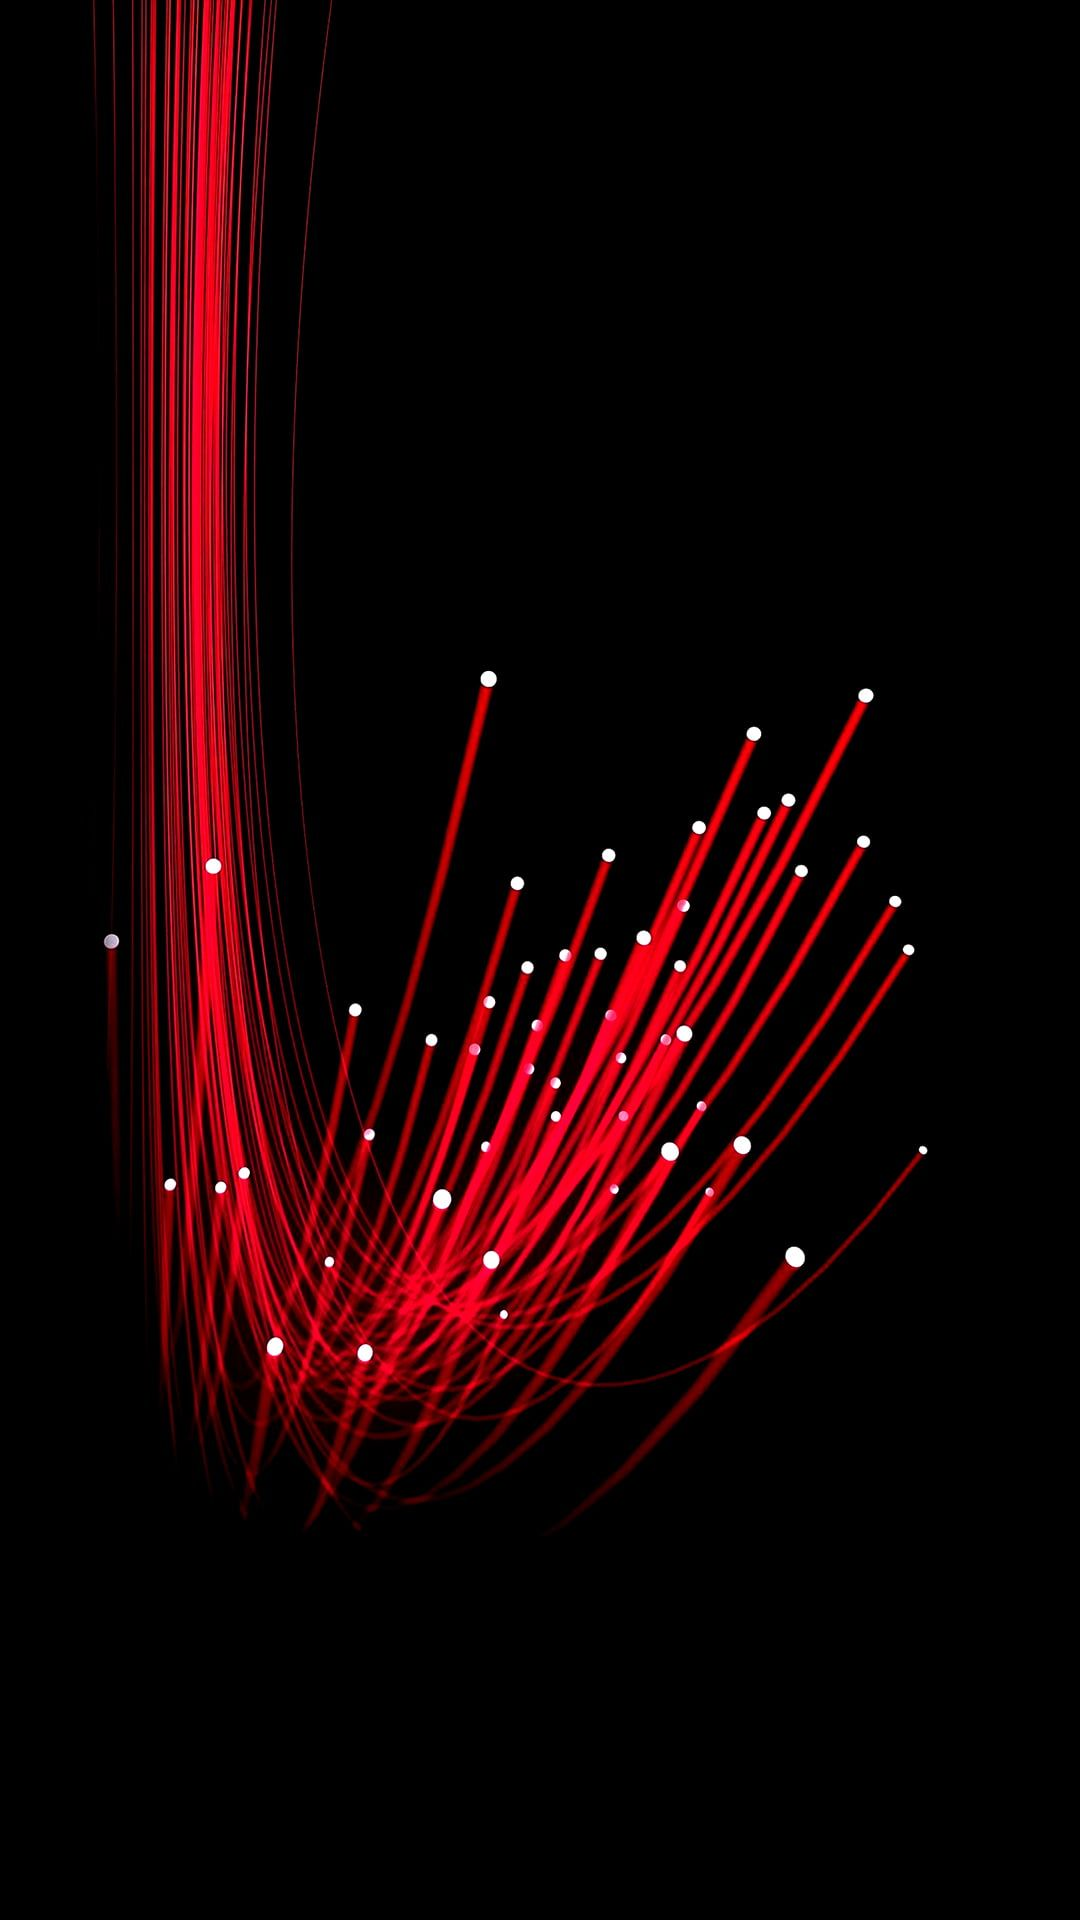 Abstract Black White Red Wallpaper Android Iphone Wallpaper Images Red And White Wallpaper Red Wallpaper